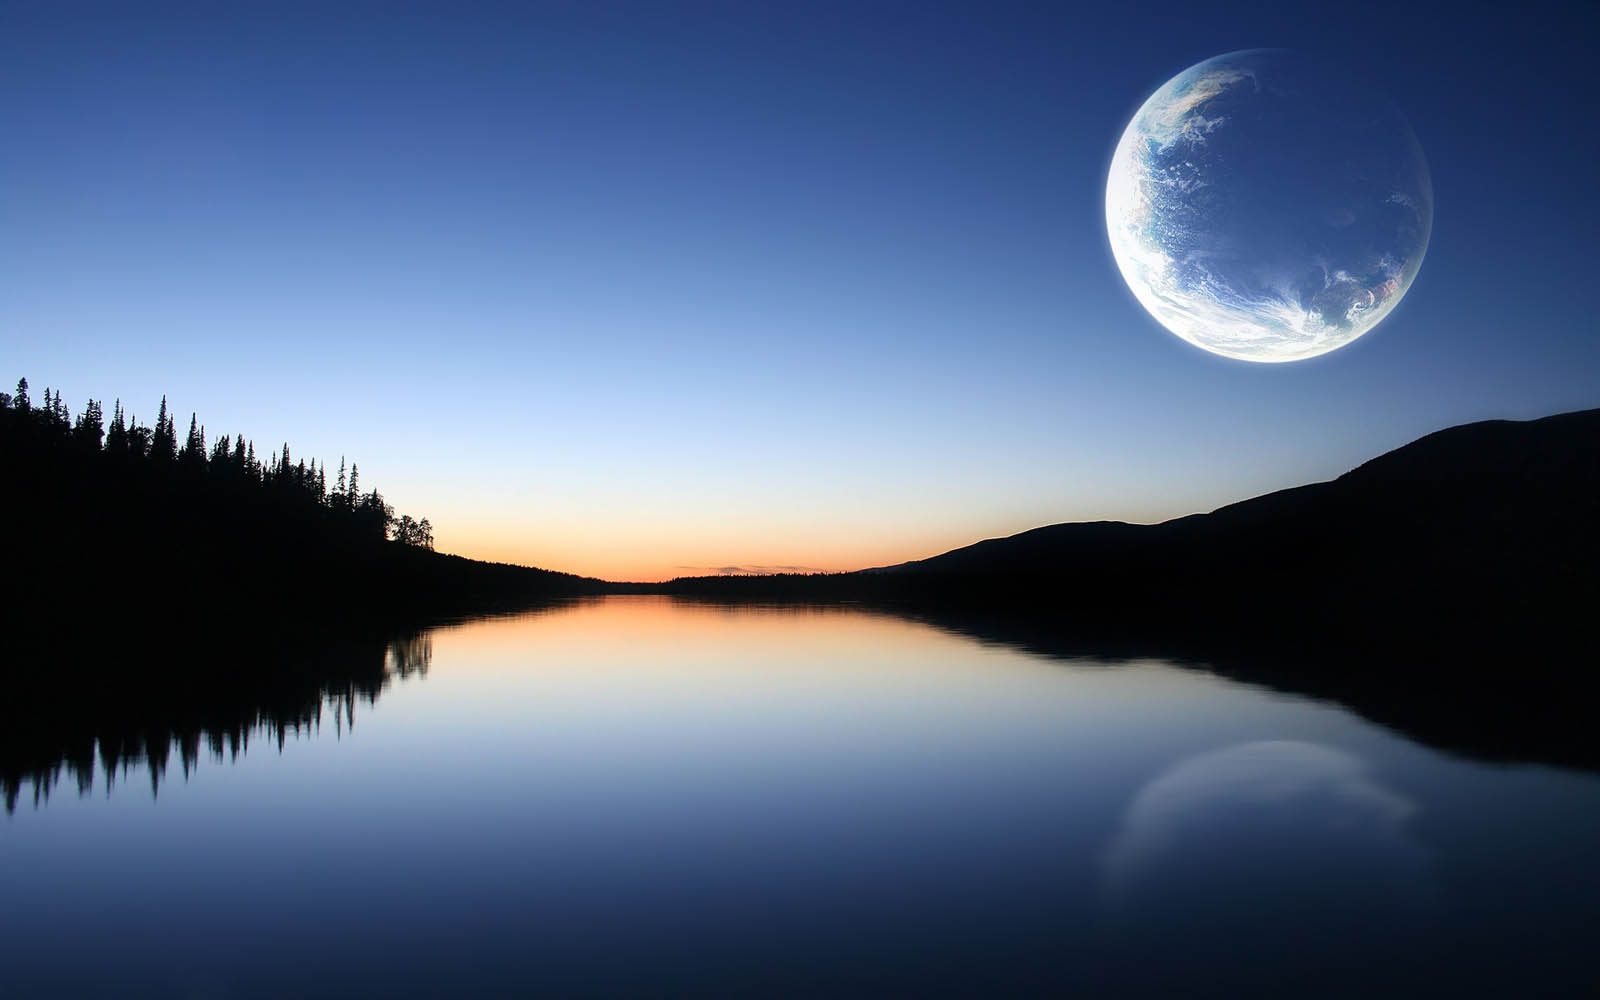 Wallpapers moon nature wallpapers for Wallpaper pictures